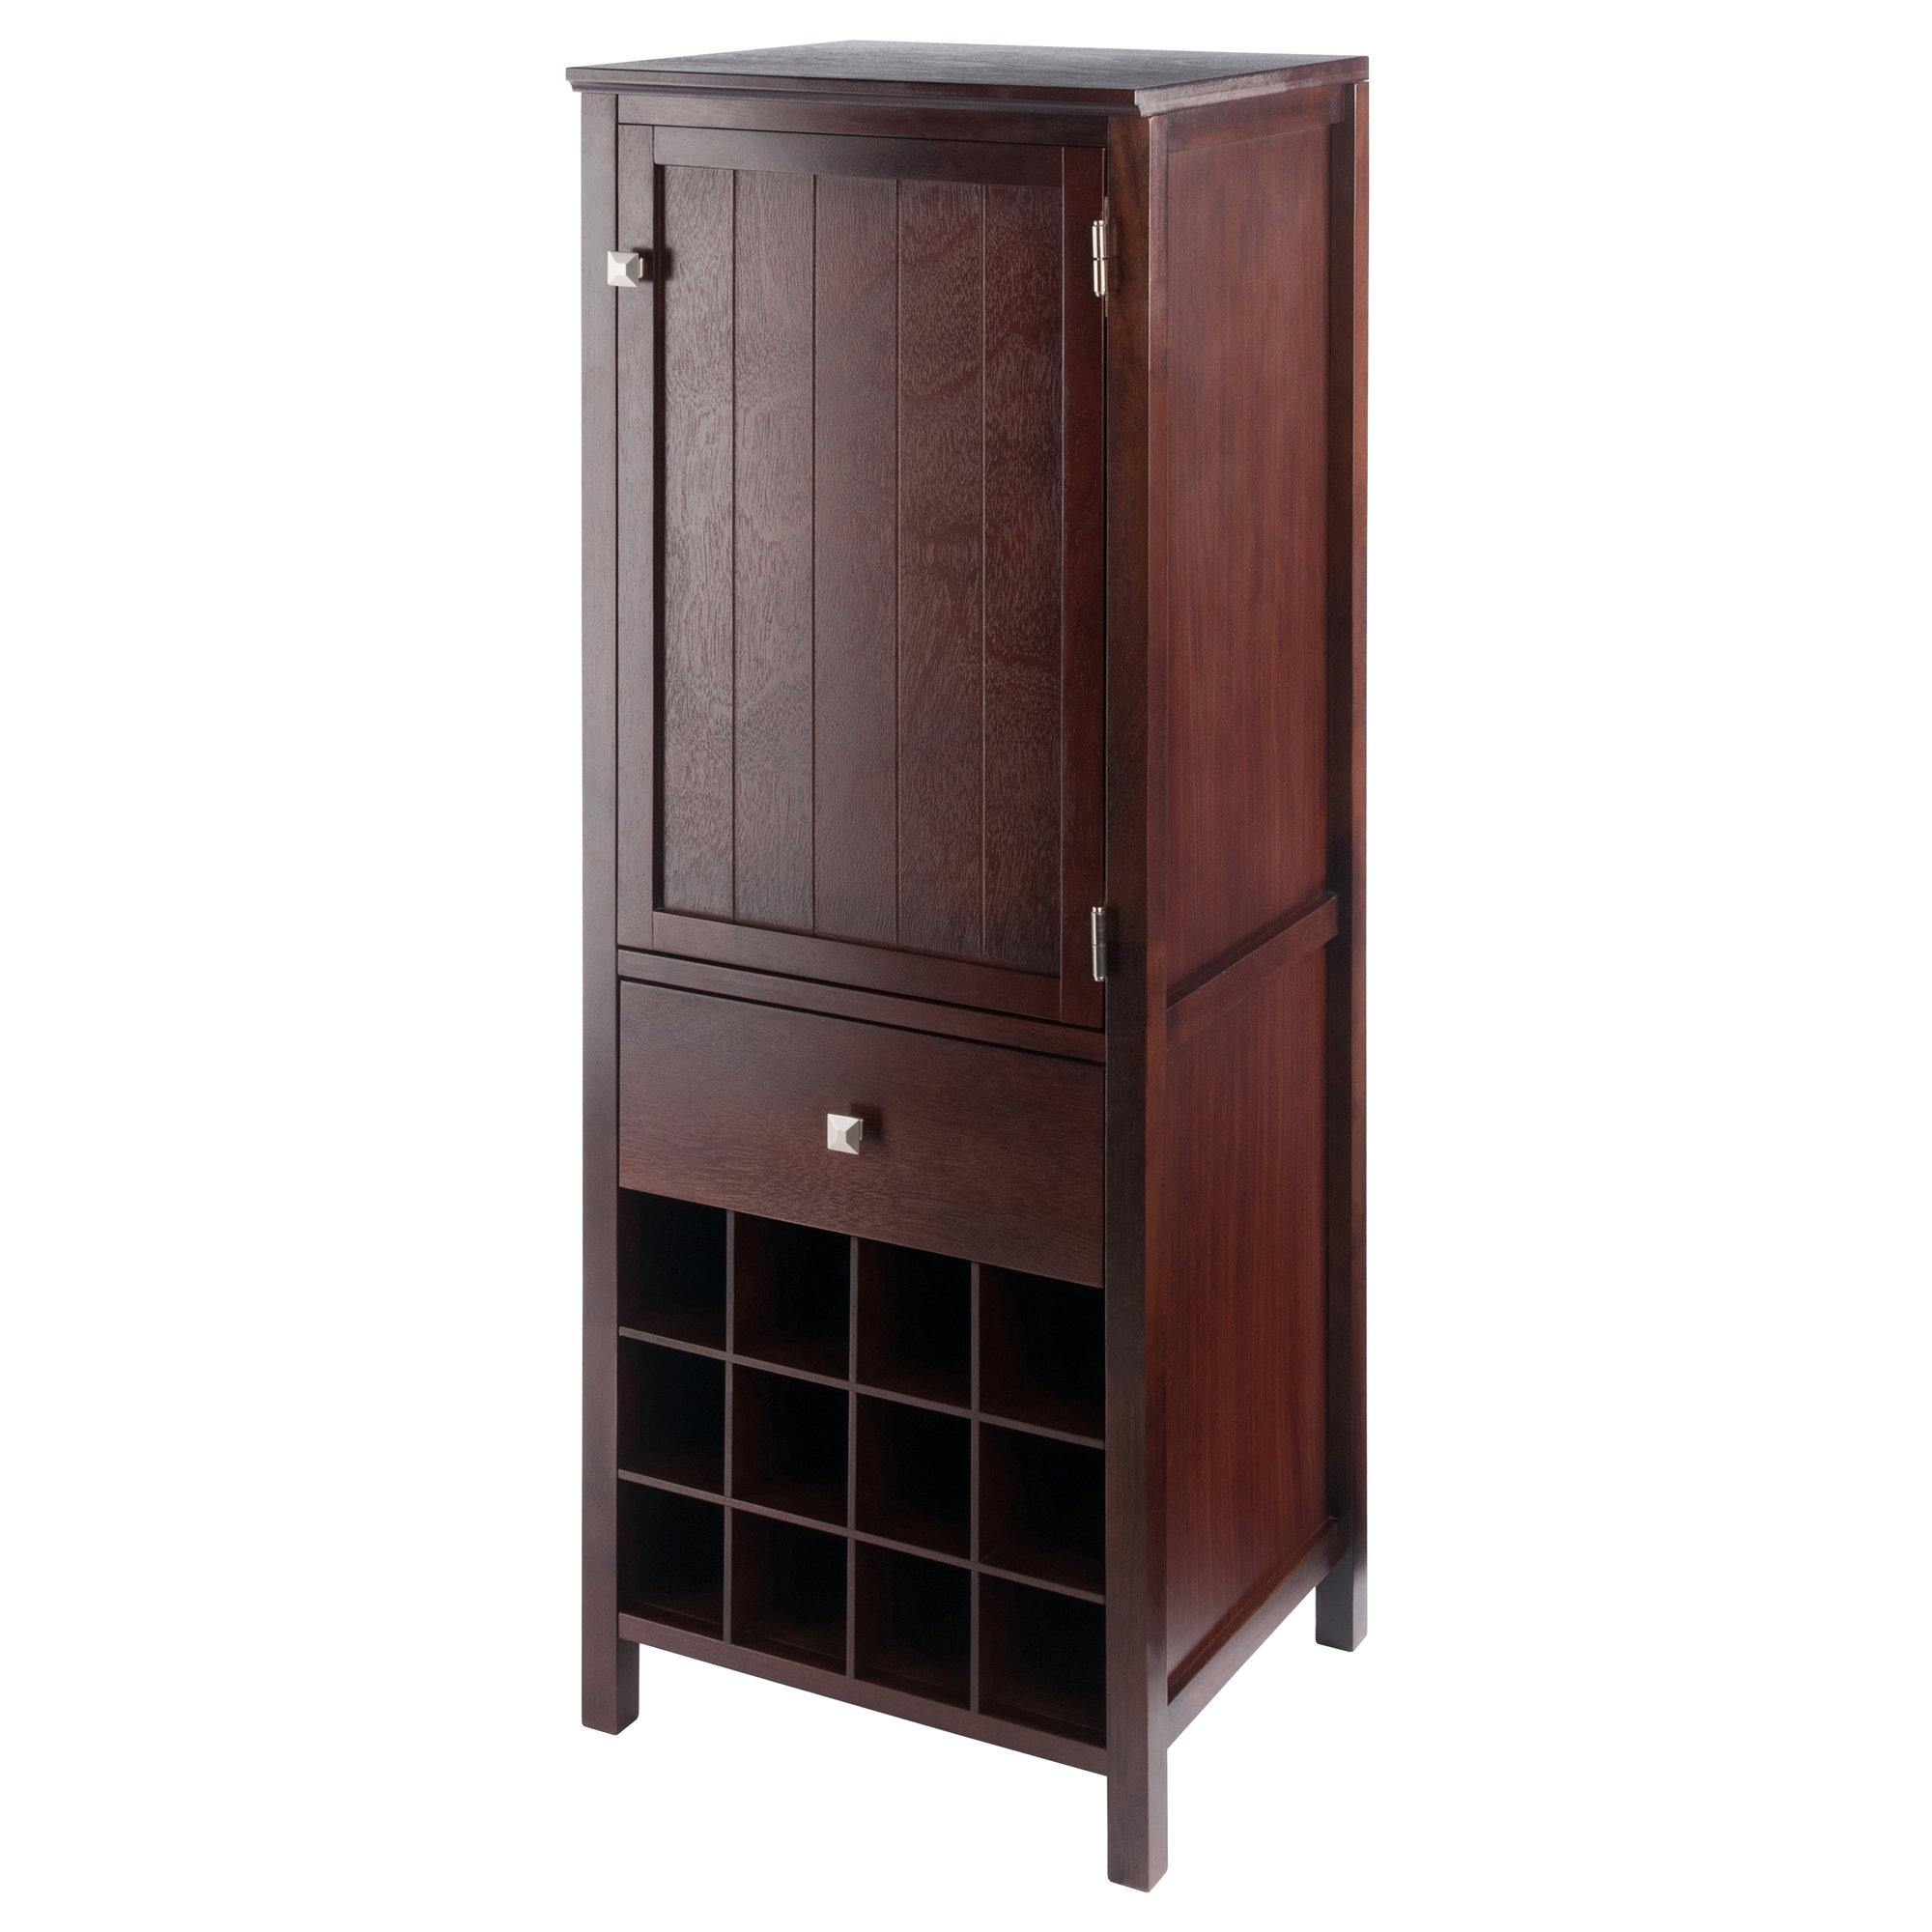 Brooke Jelly Cupboard Walnut Finish - My USA Furniture